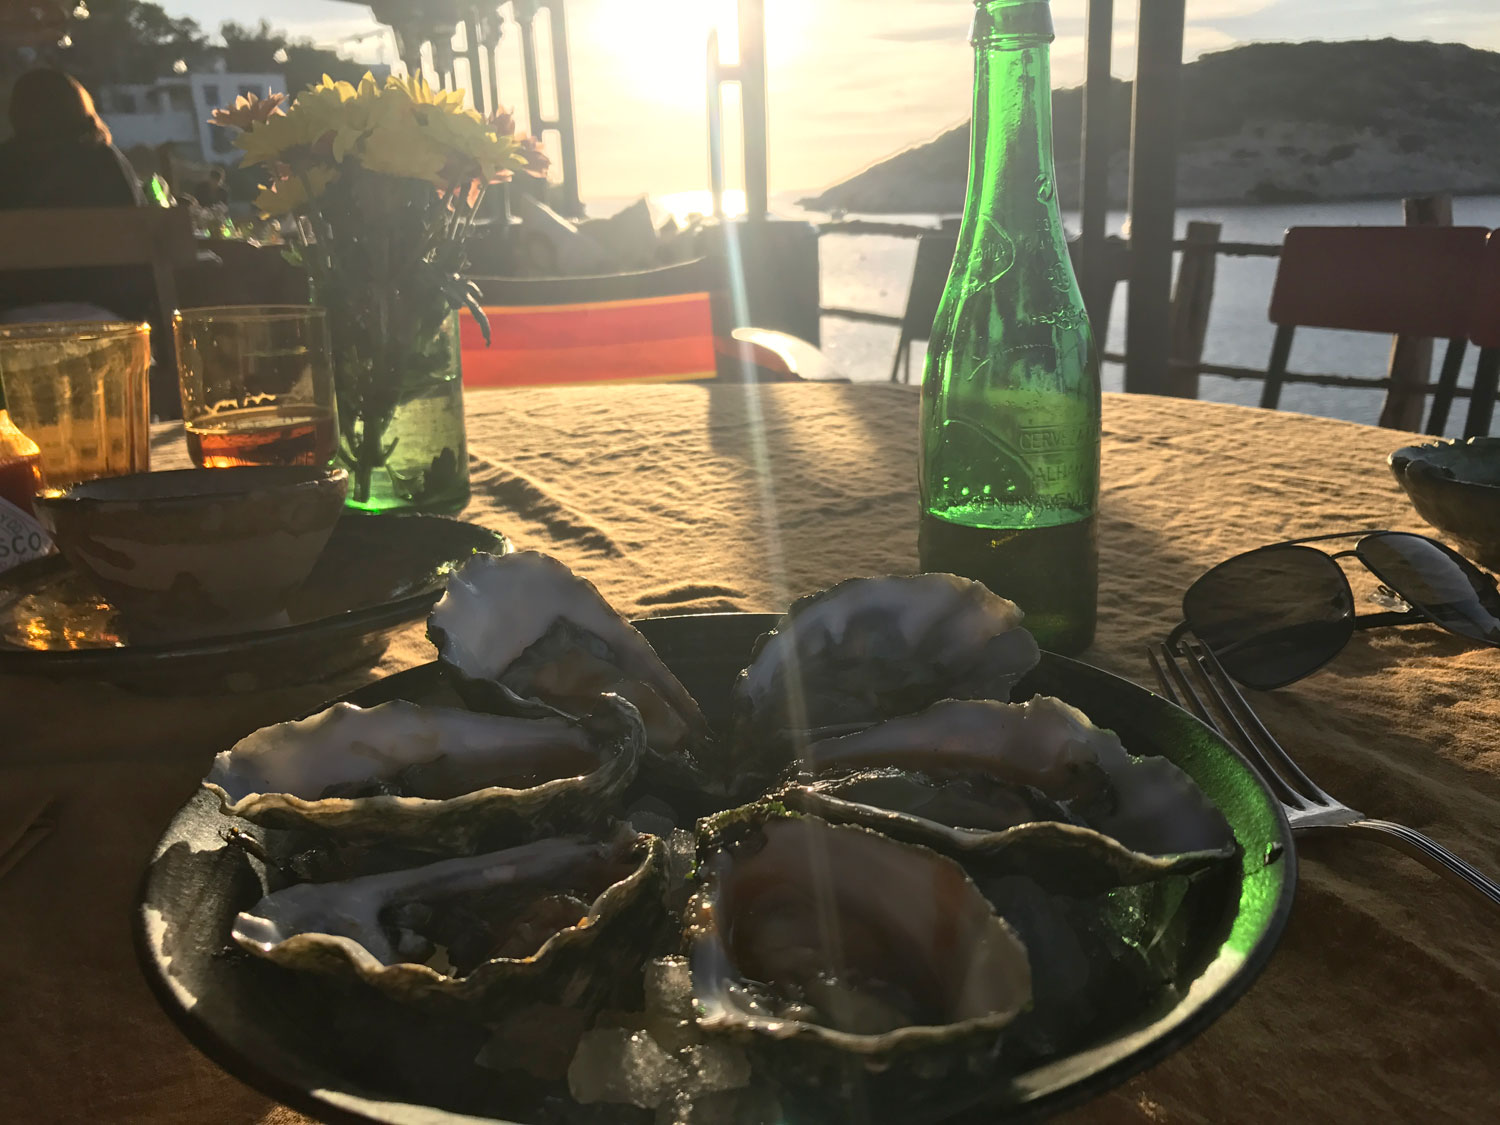 Los Enamorados Ibiza, cold beer and oysters